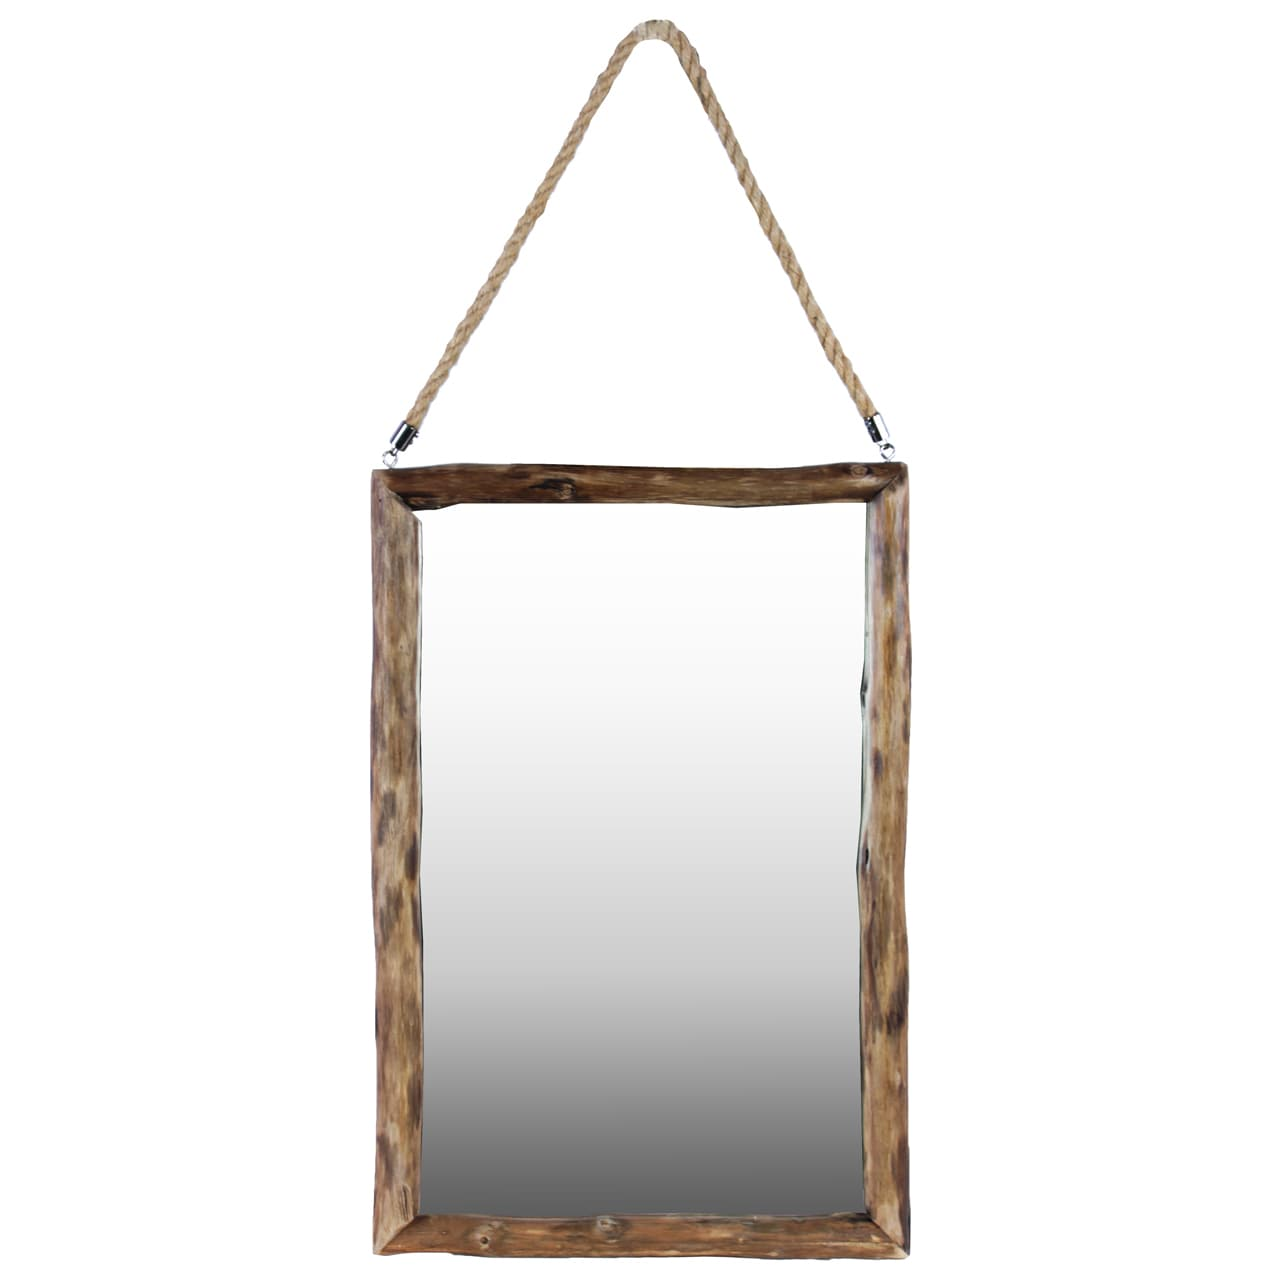 Urban Trends Collection Natural Wood Finish Brown Wood Rectangular Mirror With Rope Hanger by Urban Trend LLC